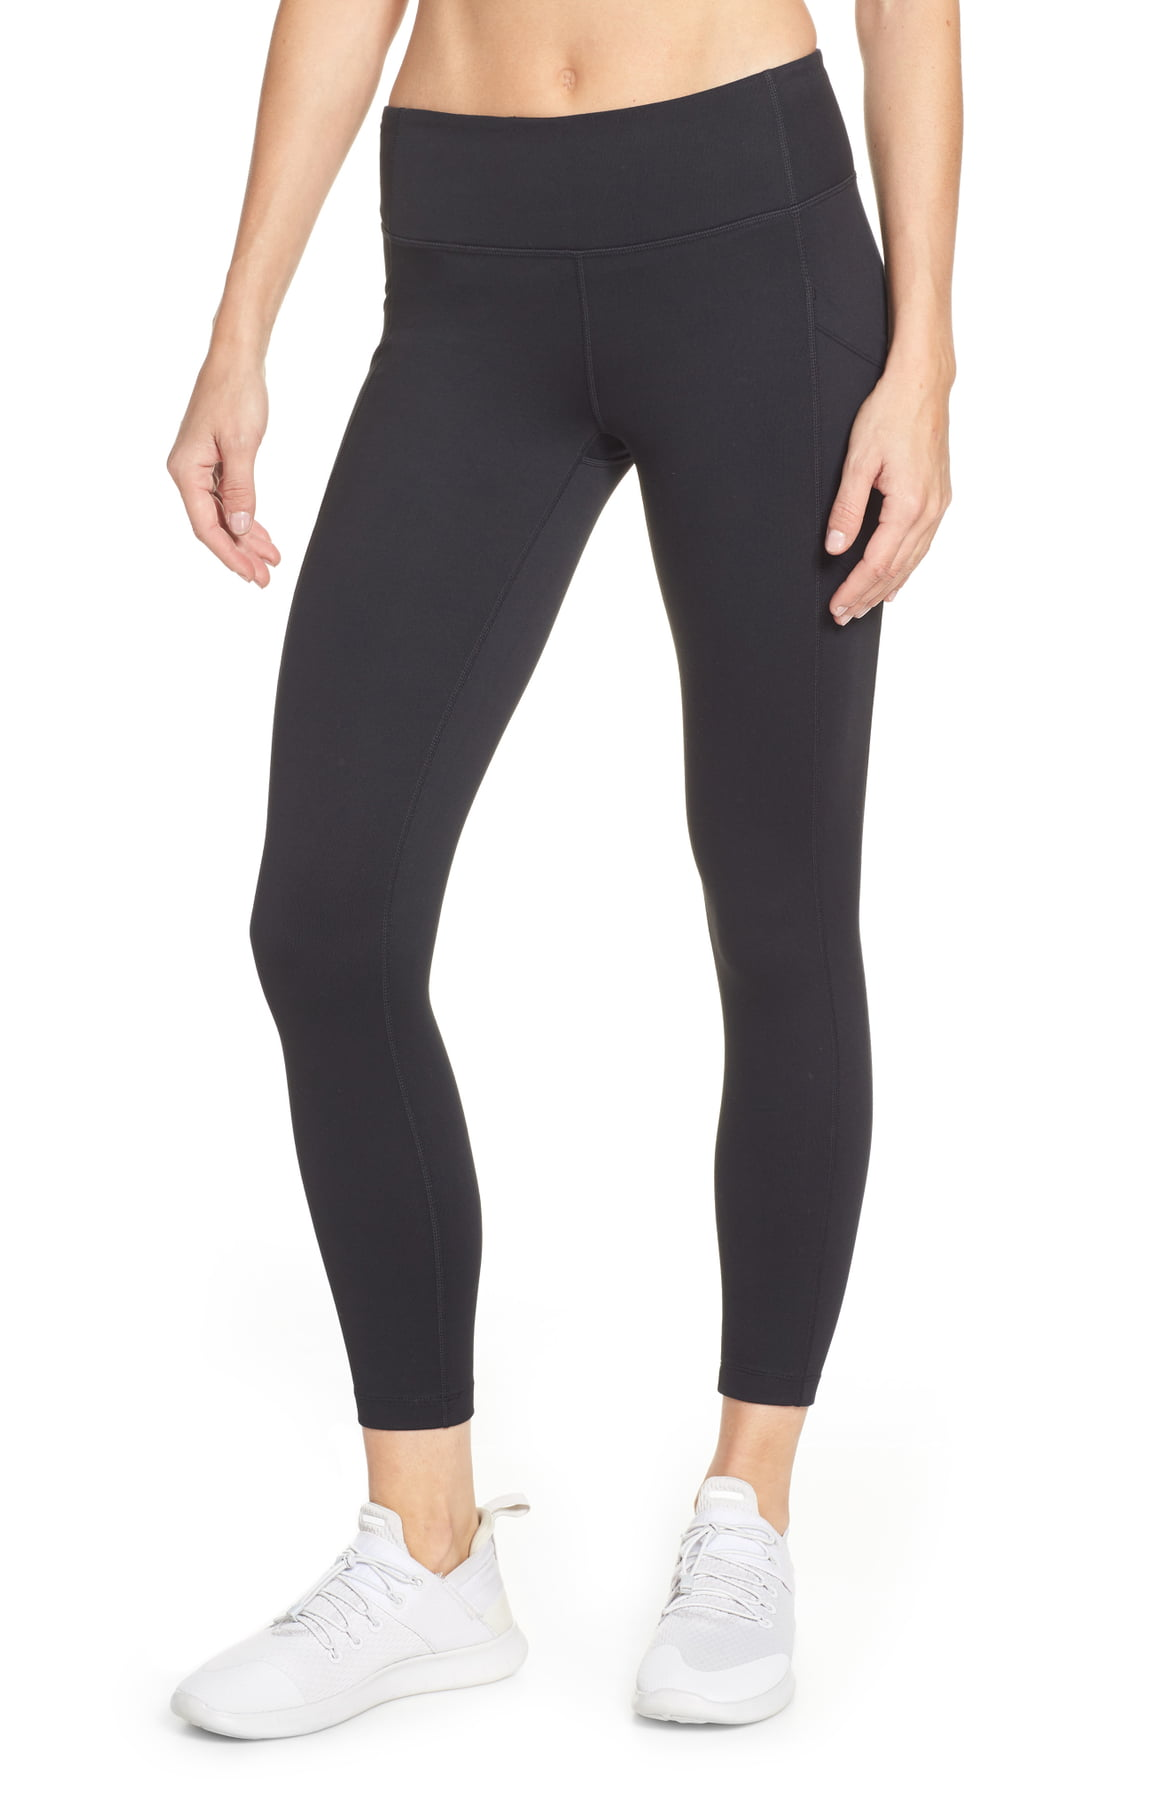 Live-In Pocket 7/8 Leggings